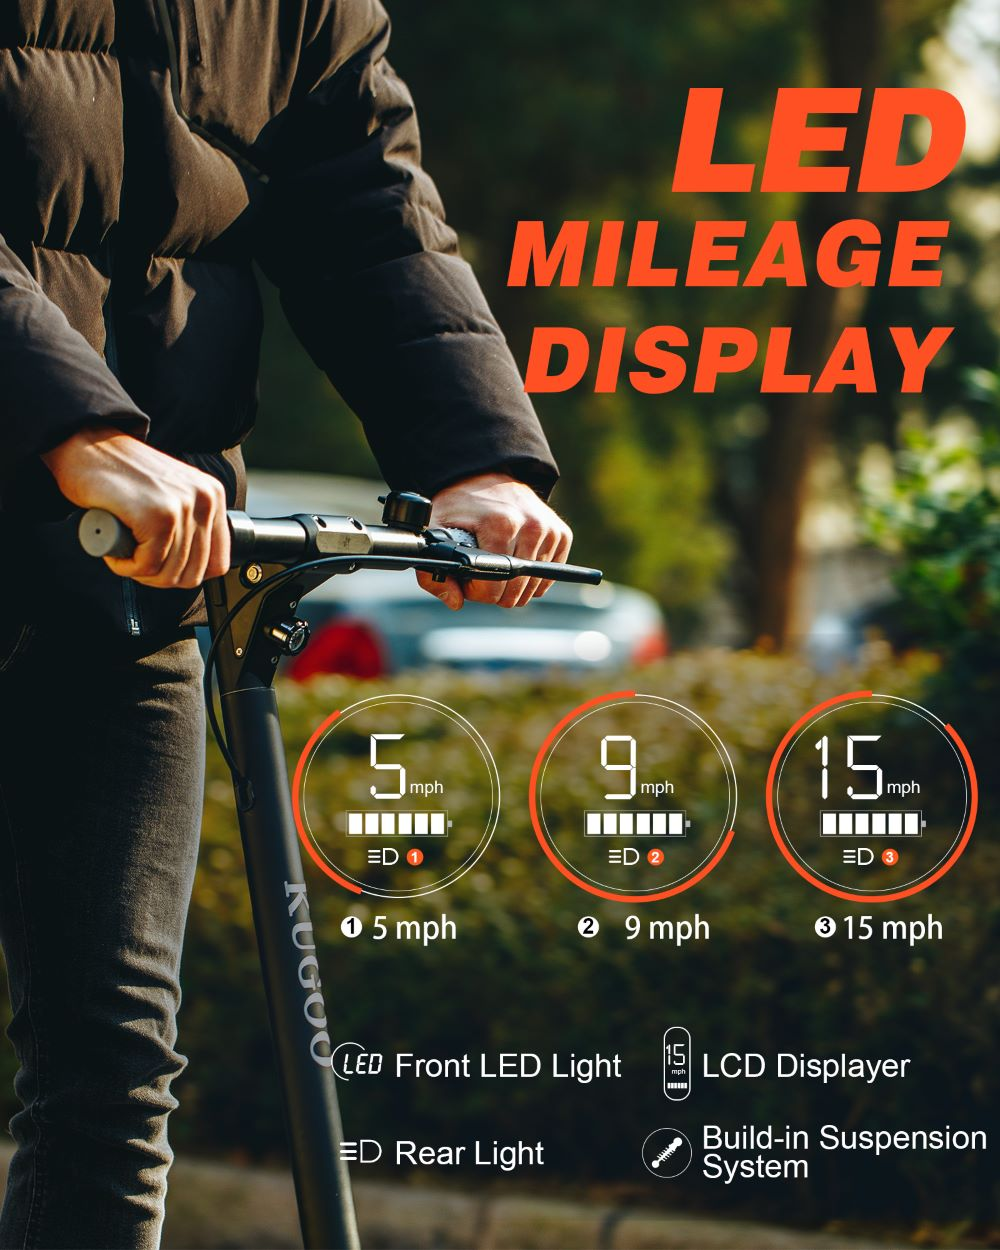 Kugoo M2 Pro Electric Scooter LED Screen